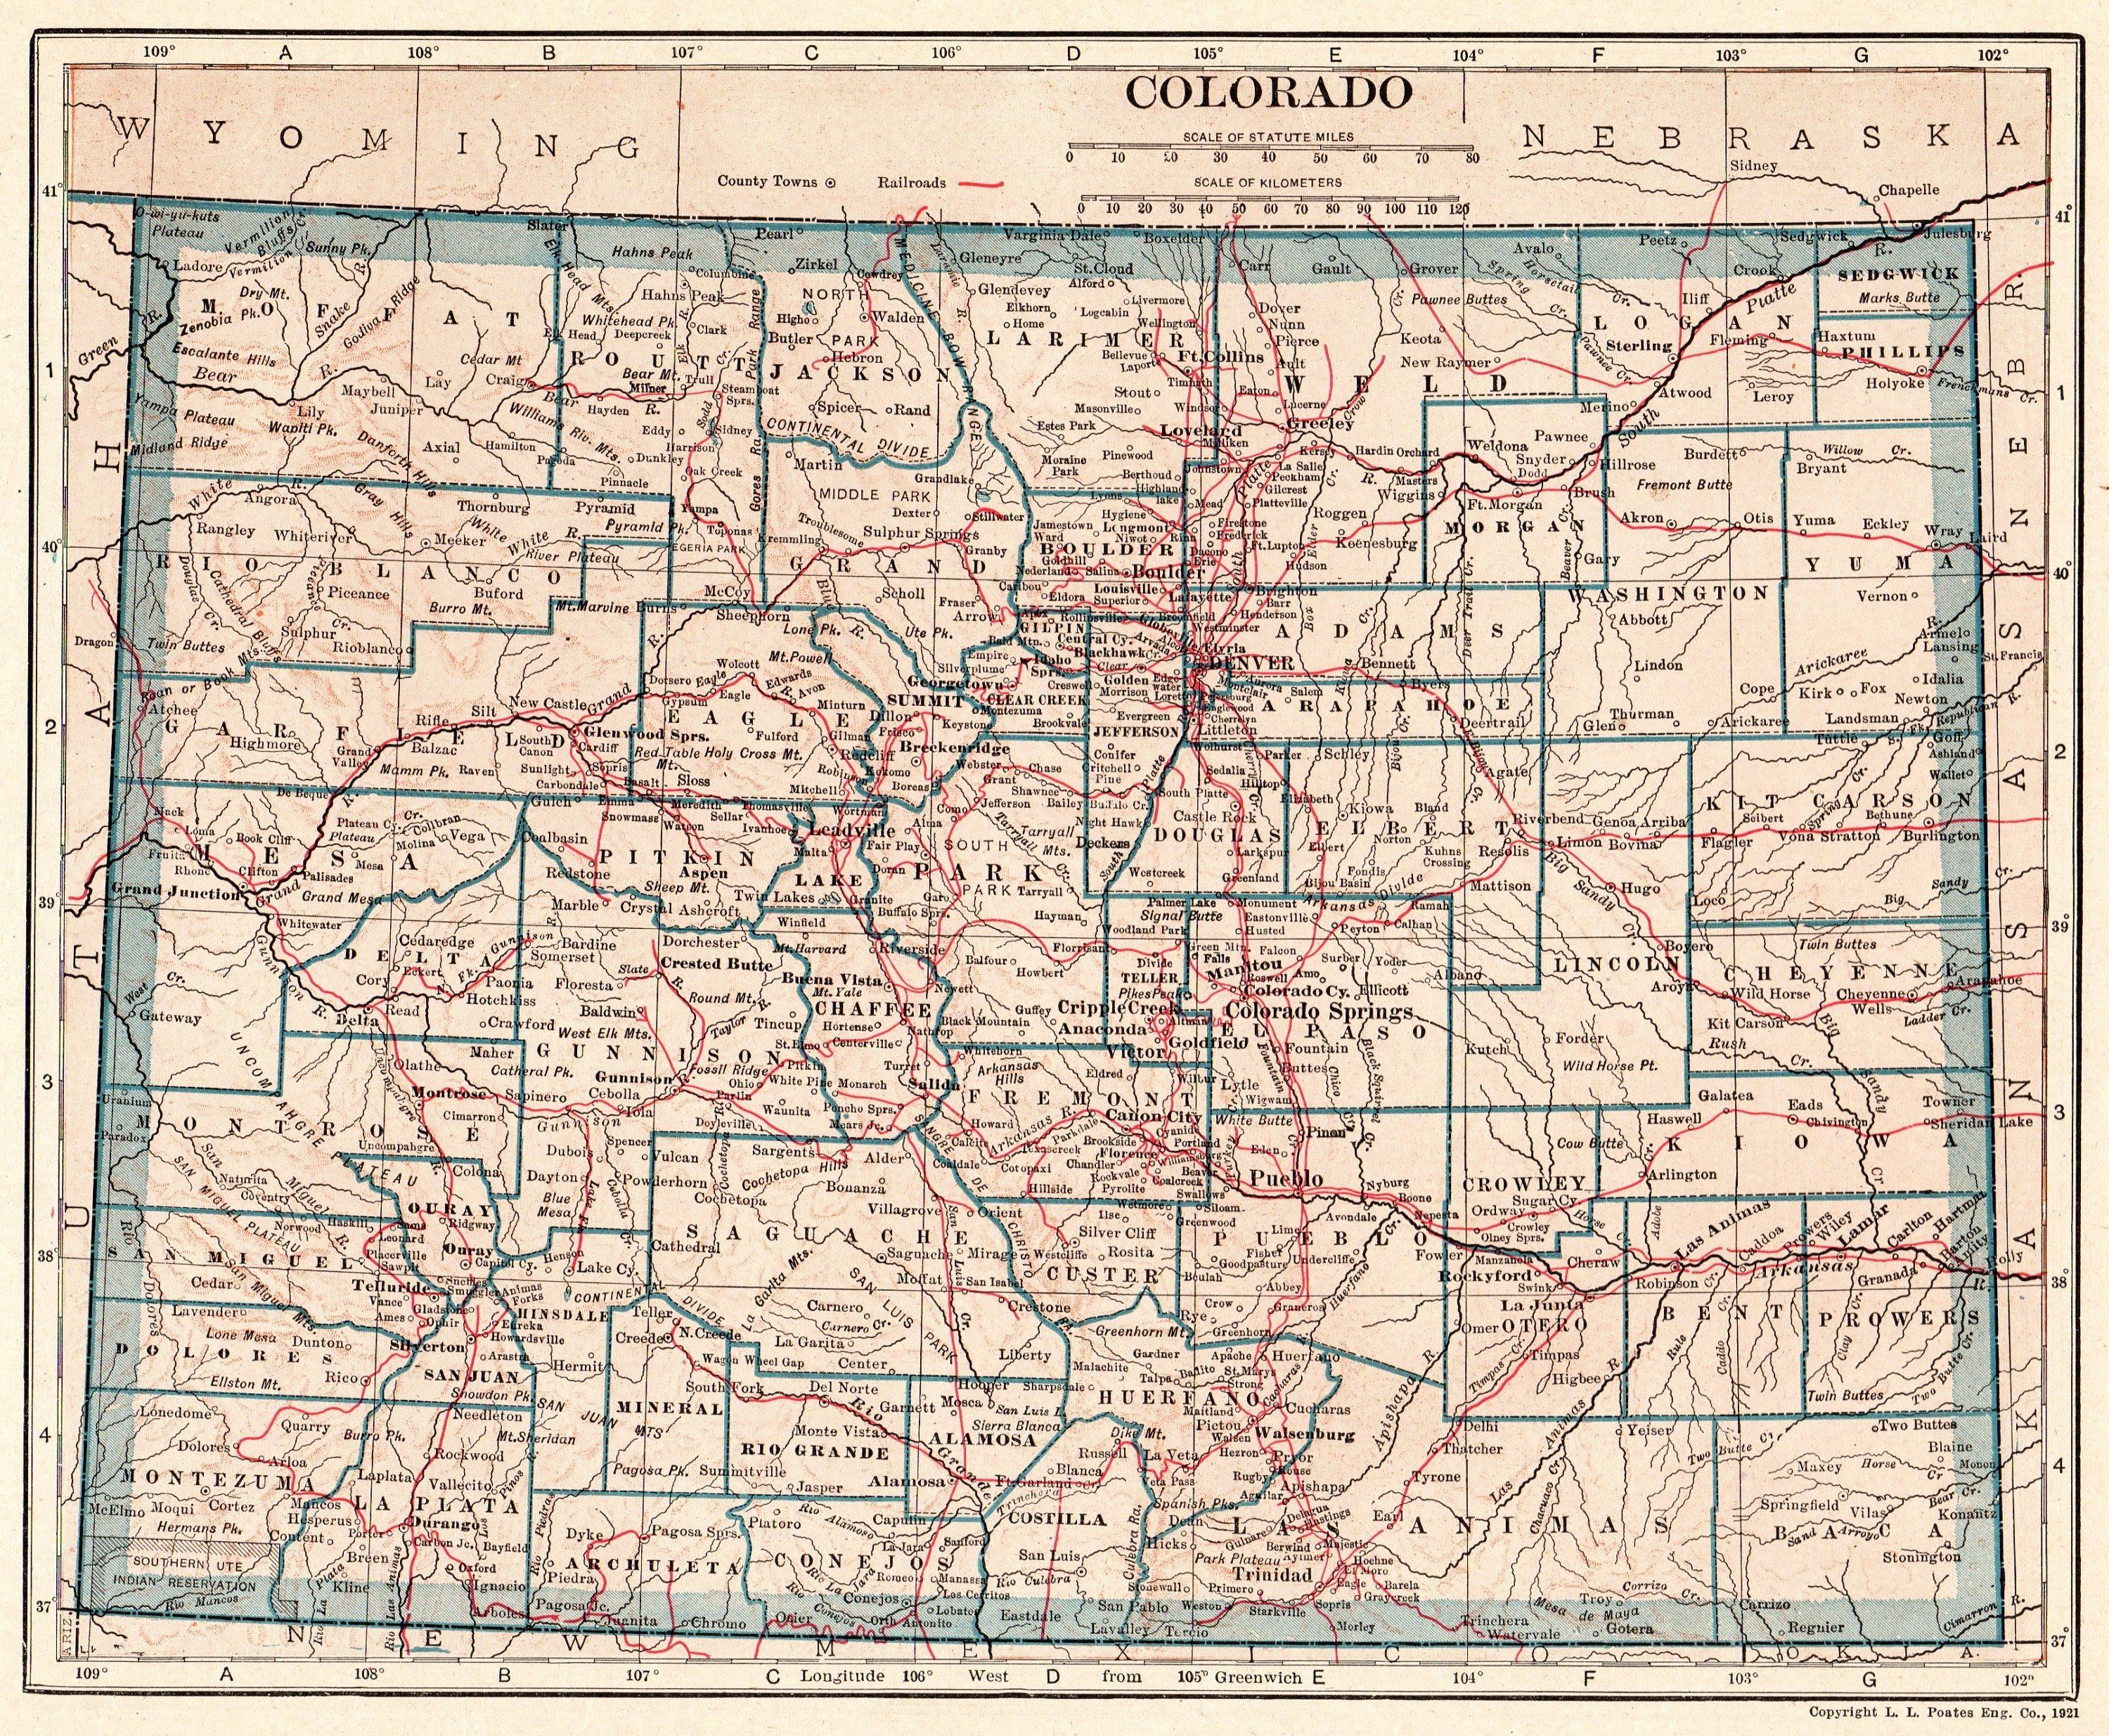 1921 Antique Colorado Map Vintage Map Of Colorado Gallery Wall Art Office Decor Gift For Birthday Wedding Ann Colorado Map Art Gallery Wall State Map Wall Art